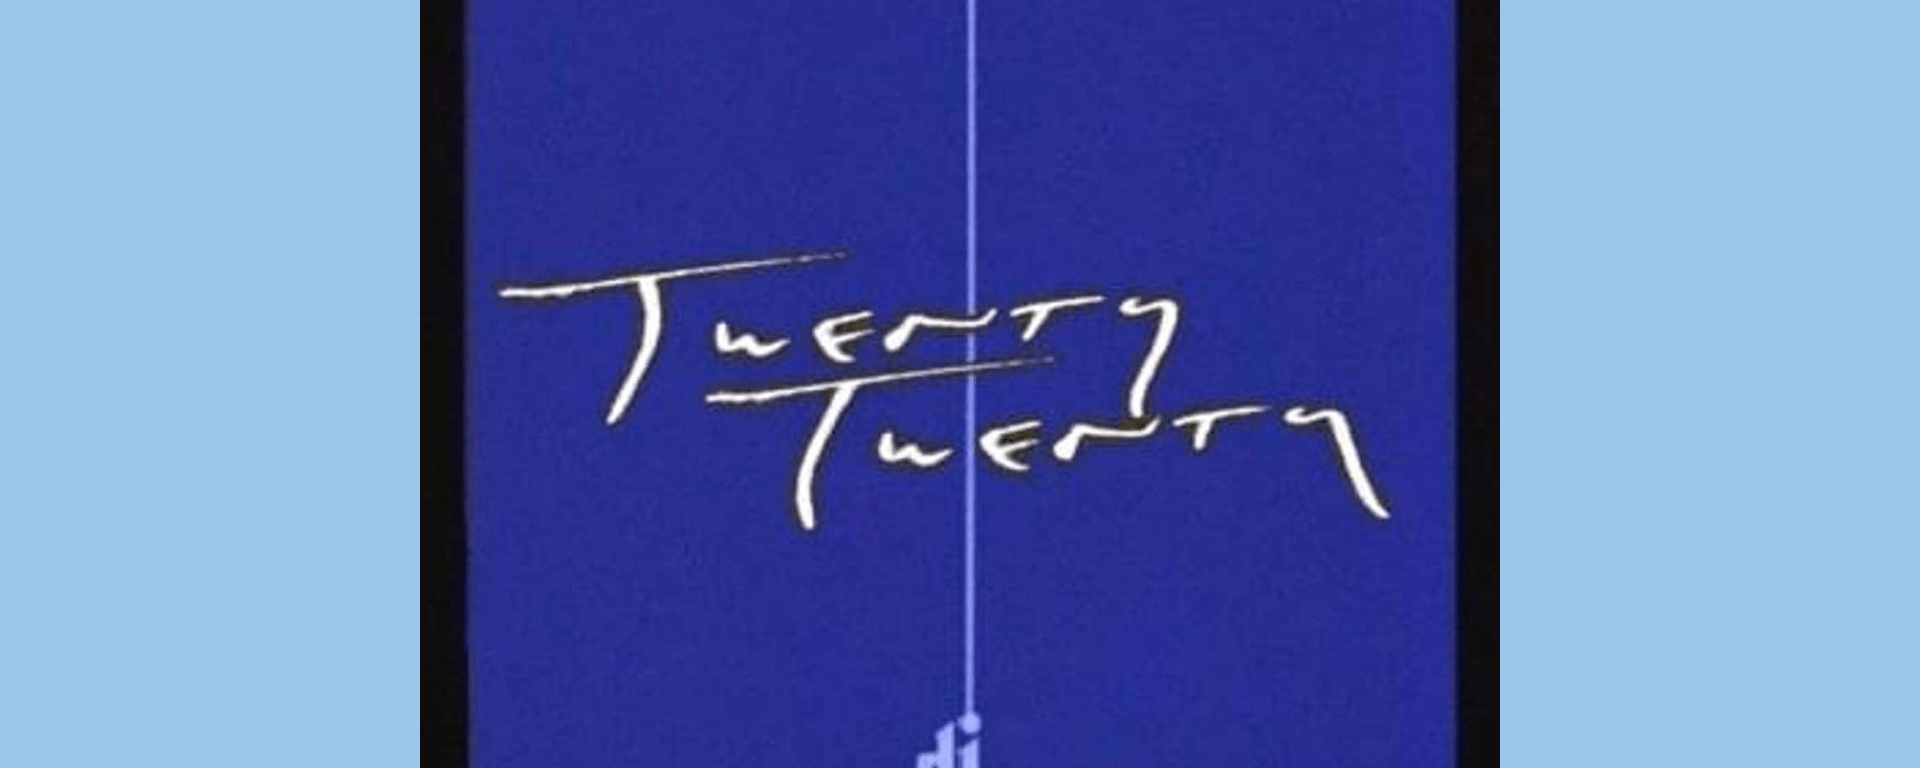 """Image of Twenty Twenty's album cover with a dark blue background and the text """"Twenty Twenty"""" and """"Djo"""" on top in gold lettering"""